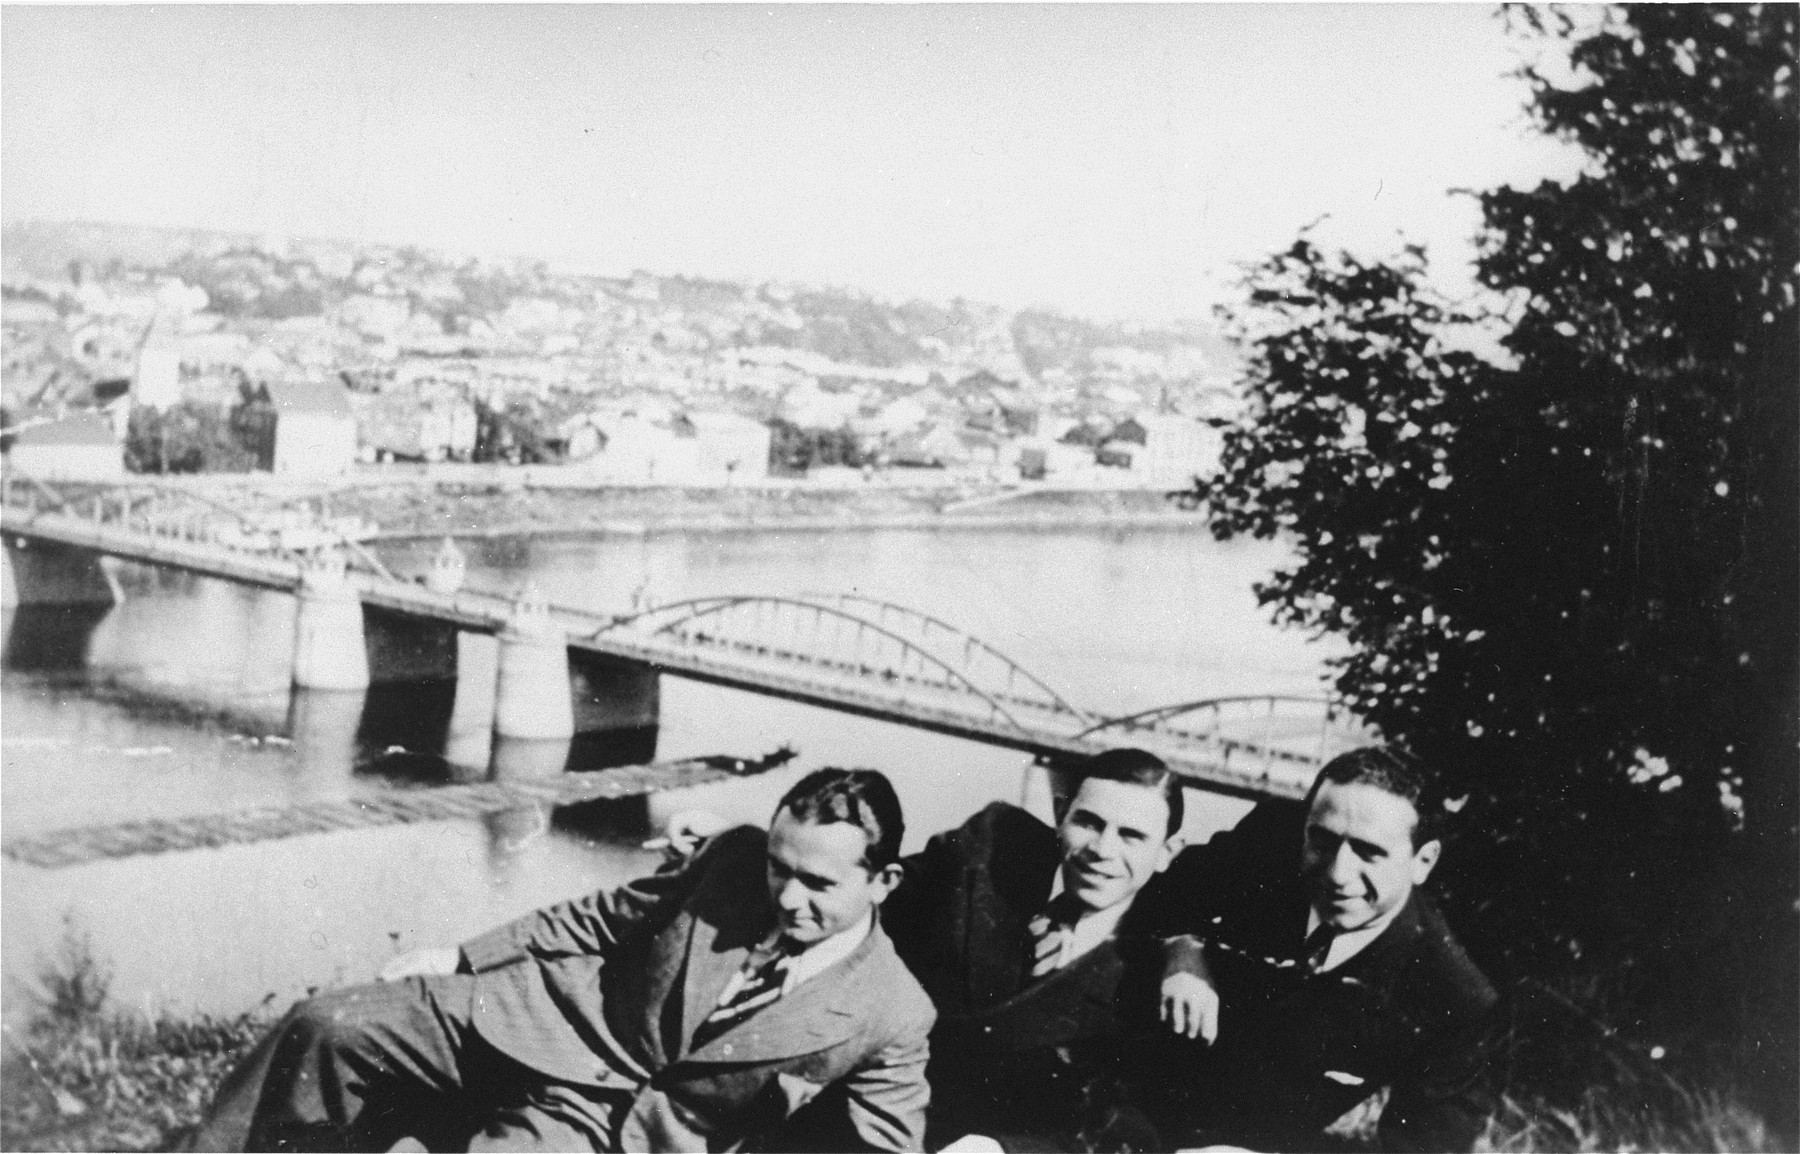 Three Jewish friends pose for a picture on the banks of the Nemanas River in Kovno.    Pictured from left to right are: Jankel Selsky, Jona Wisgardisky (the donor's father), and Shabbtai Poner.  All three survived the war.